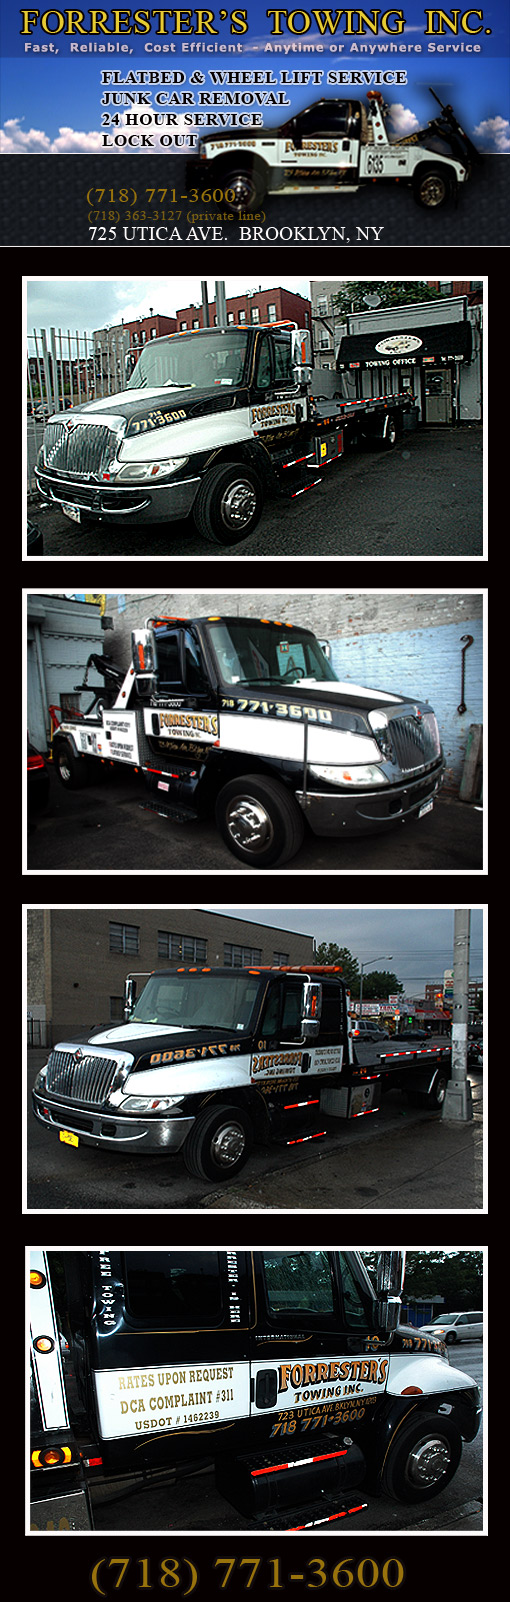 Forrester Towing Utic Ave, Brooklyn NY